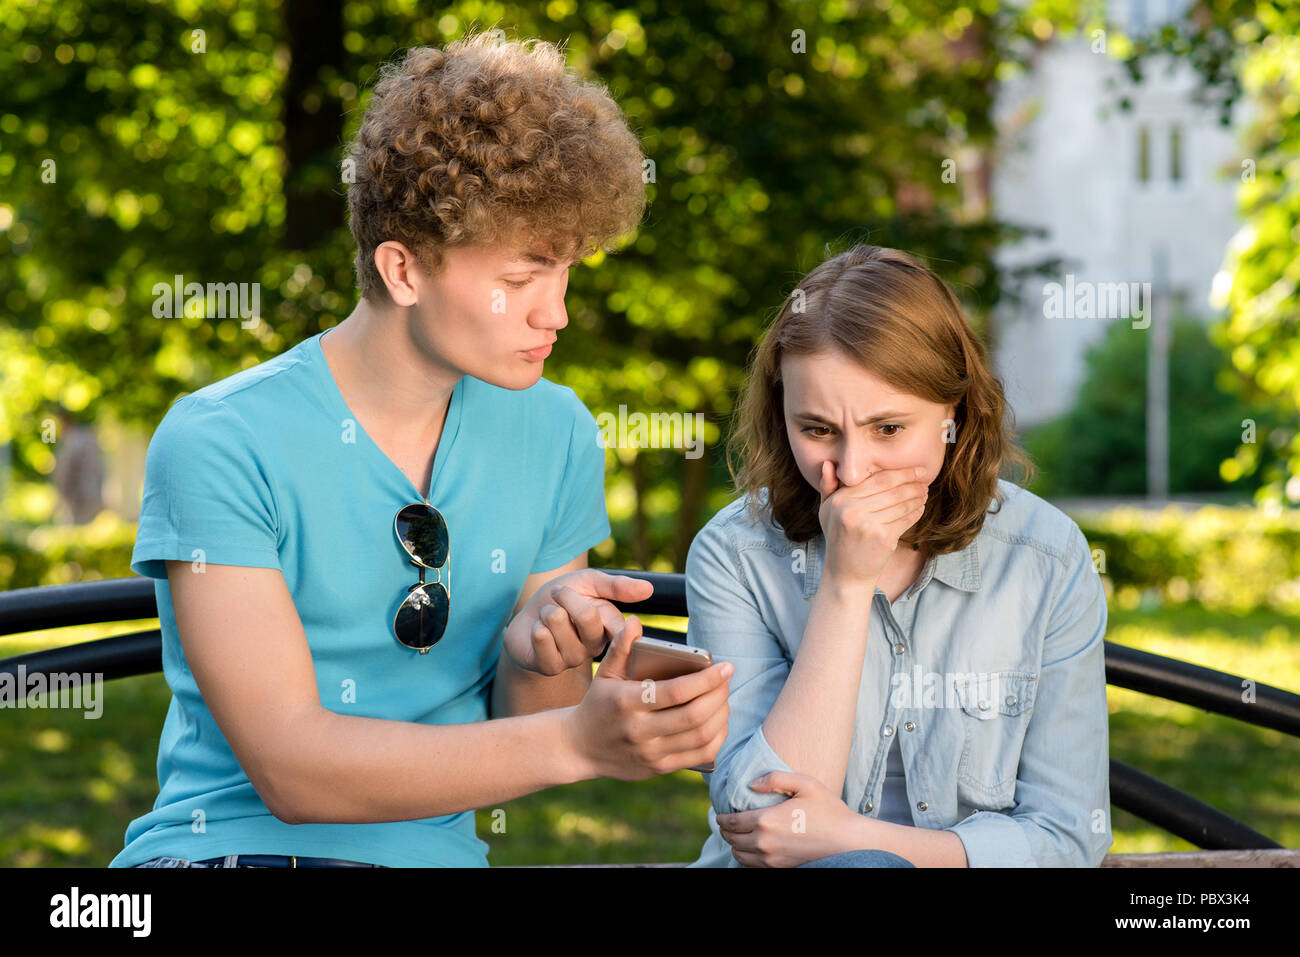 A boy with a girl in summer outdoors. A guy is holding hands with a smartphone pointing his finger at the phone. Emotions of mistrust. The problem is in relationship. Corrections in correspondence. - Stock Image